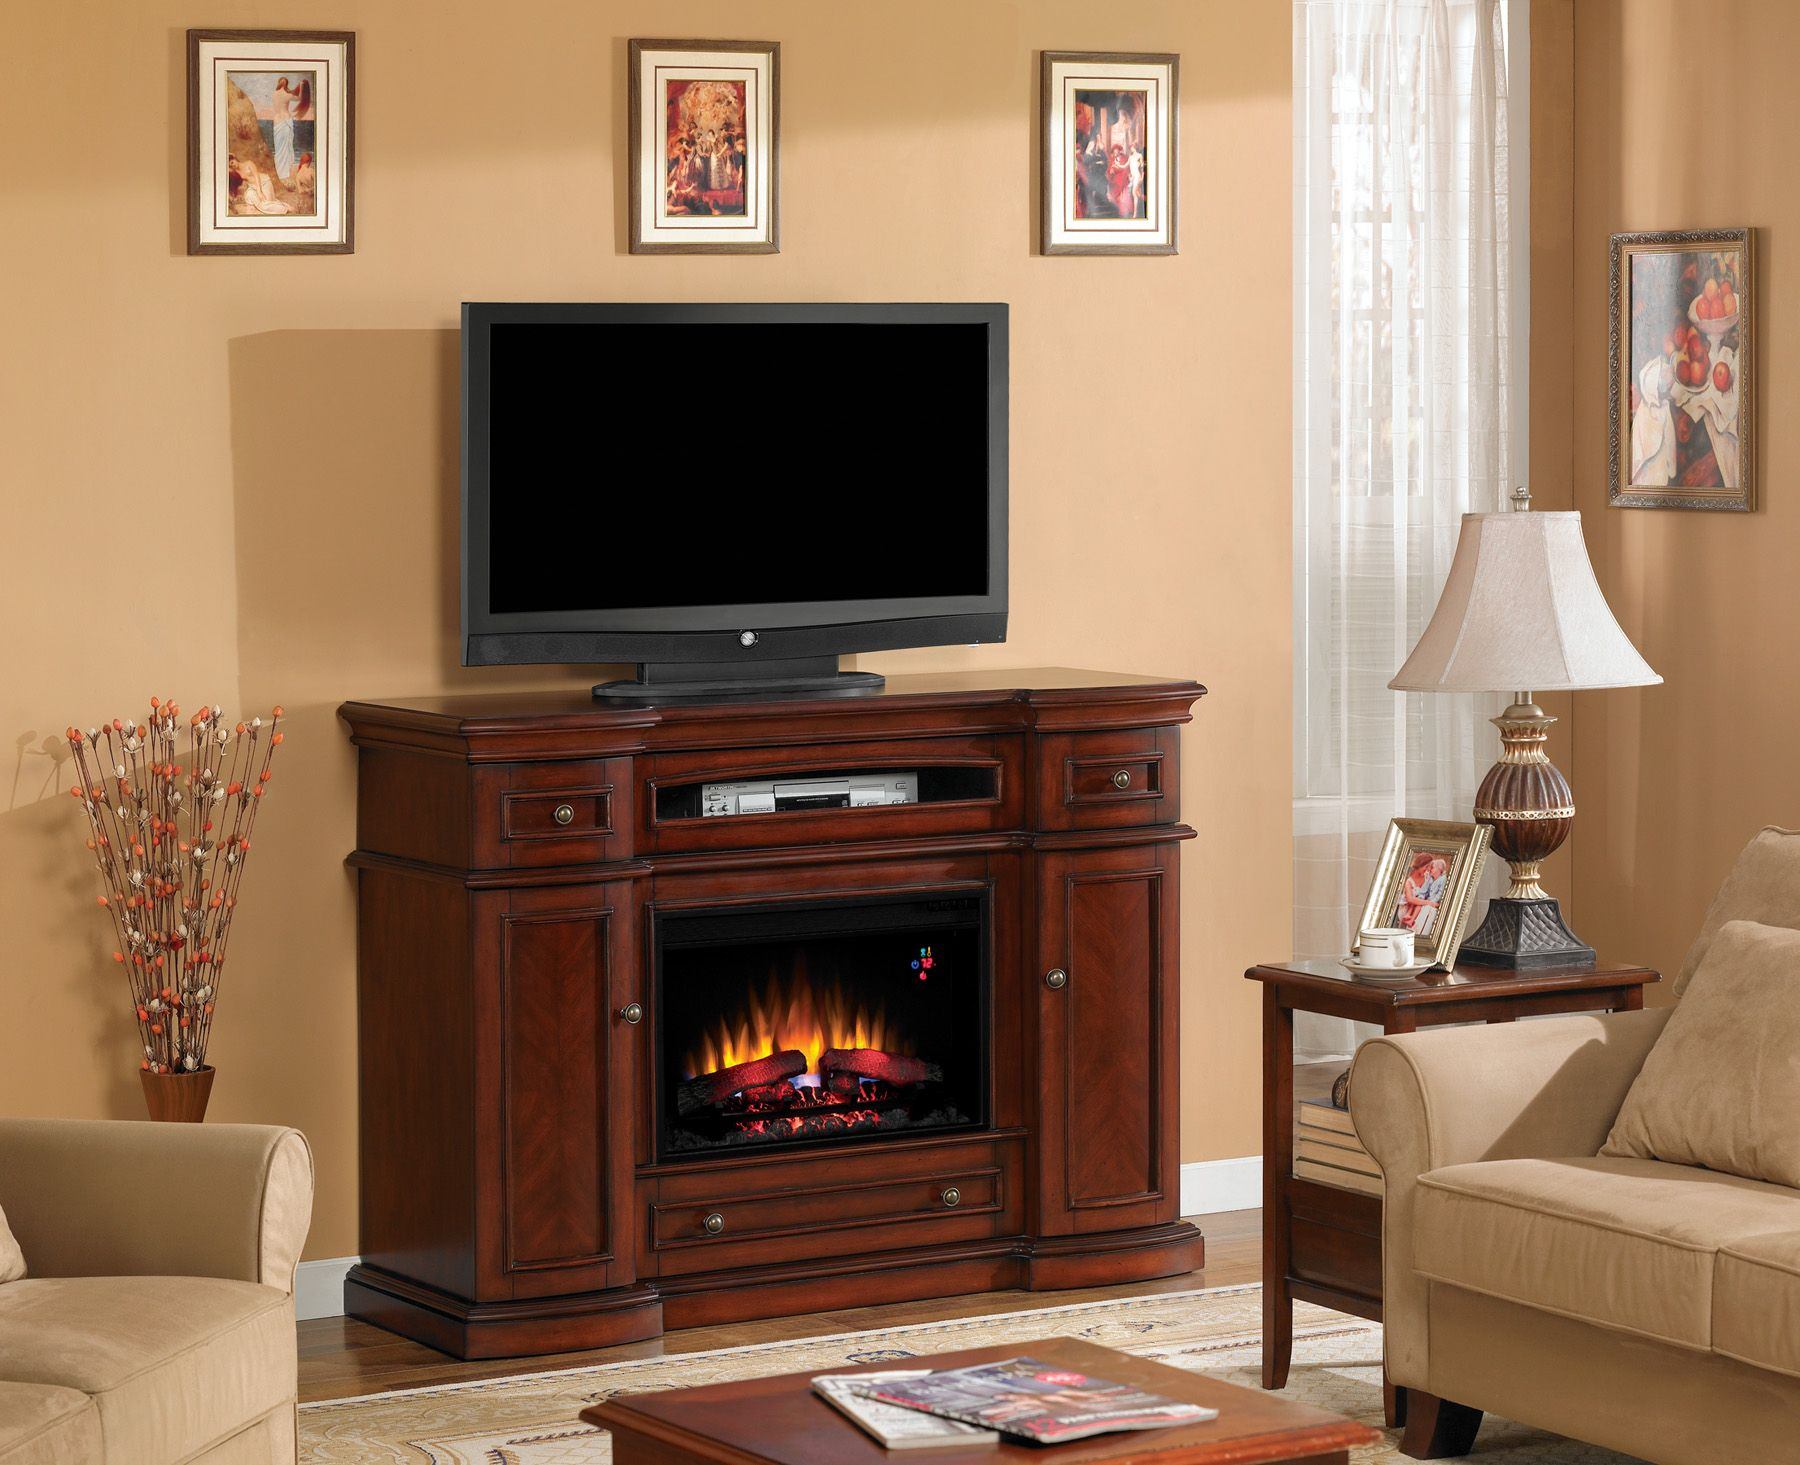 Fireplace amp tv stand in premium cherry finish with 23ef025gra electric - Classic Flame Manufactures The Most Extensive Selection Of High Quality Electric Fireplaces Electric Fireplace Mantel Packages Wall Mount Electric